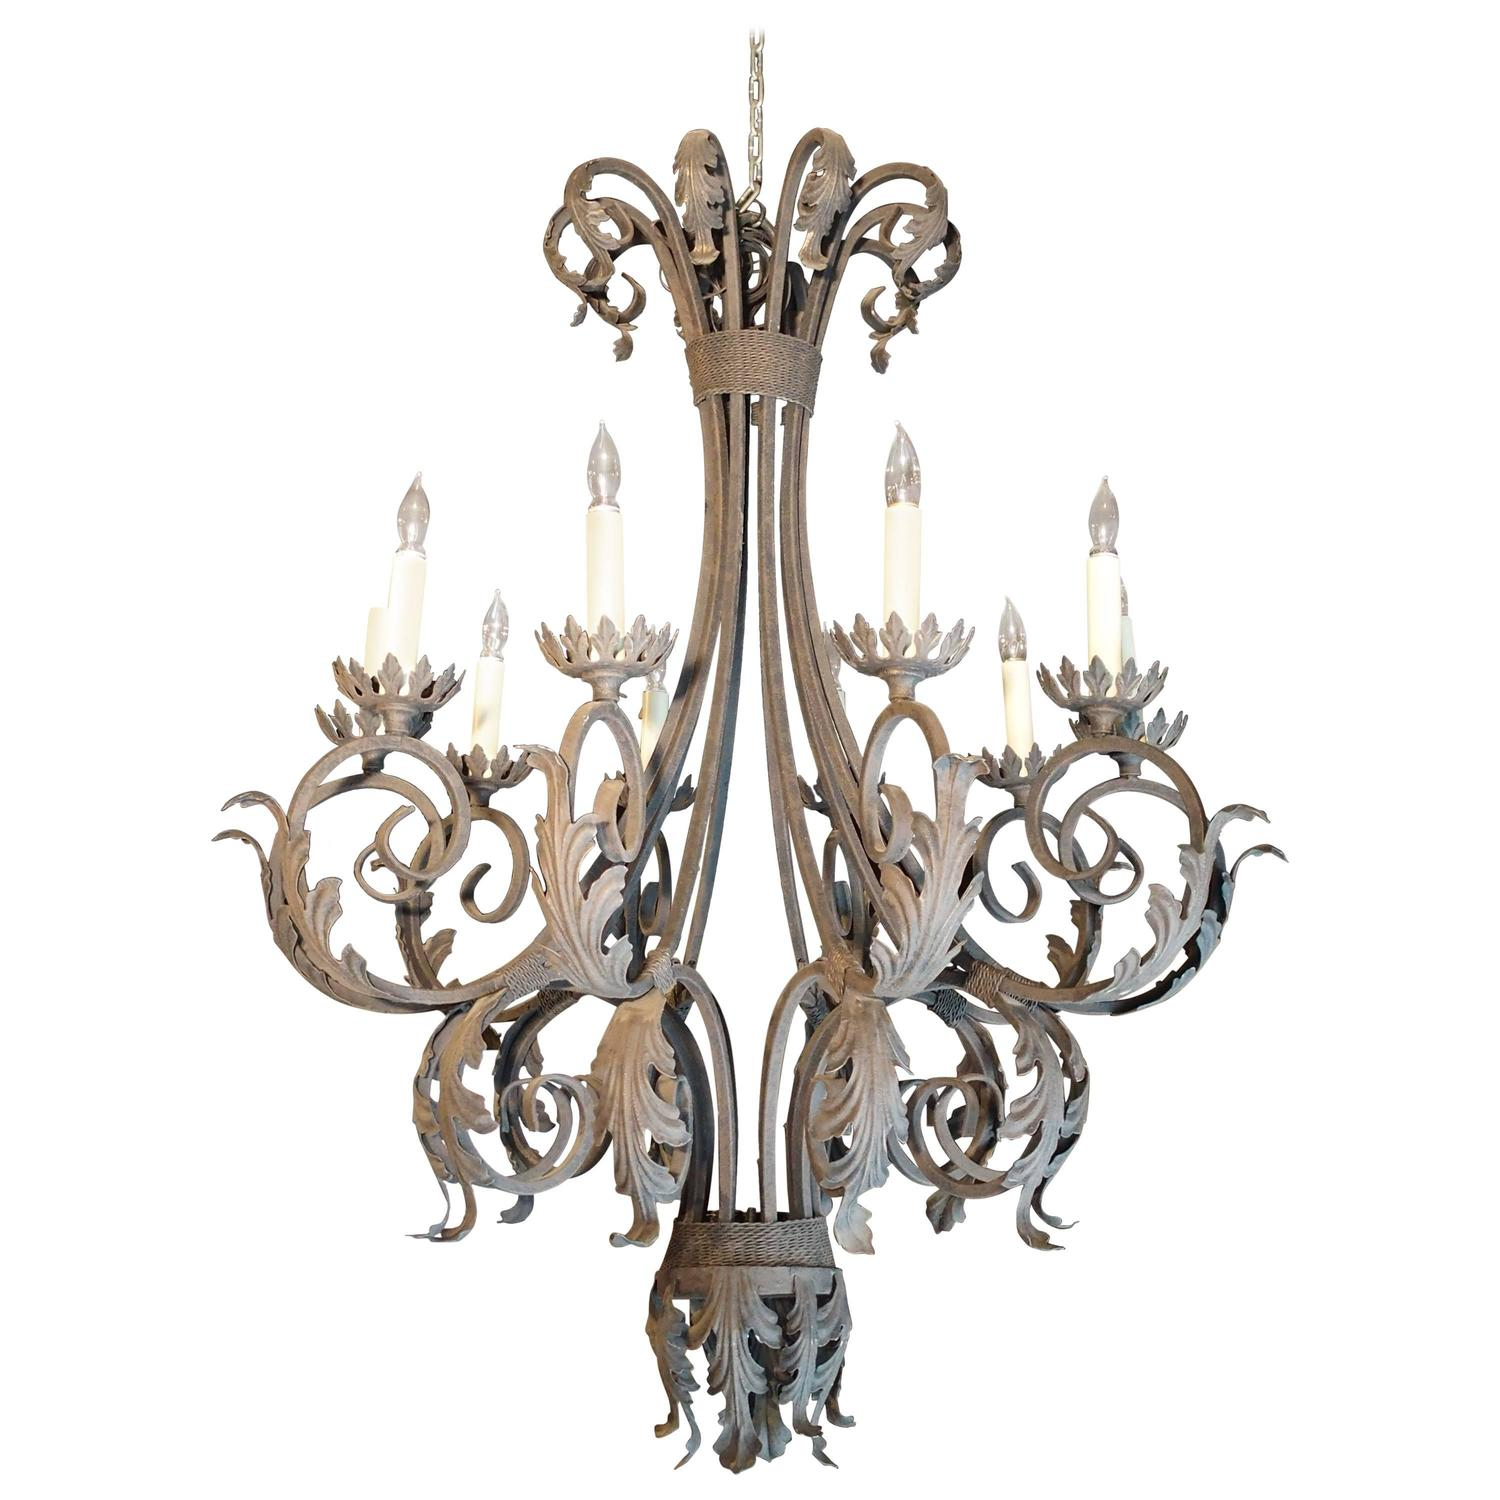 Painted Iron Acanthus Leaf Chandelier from France at 1stdibs